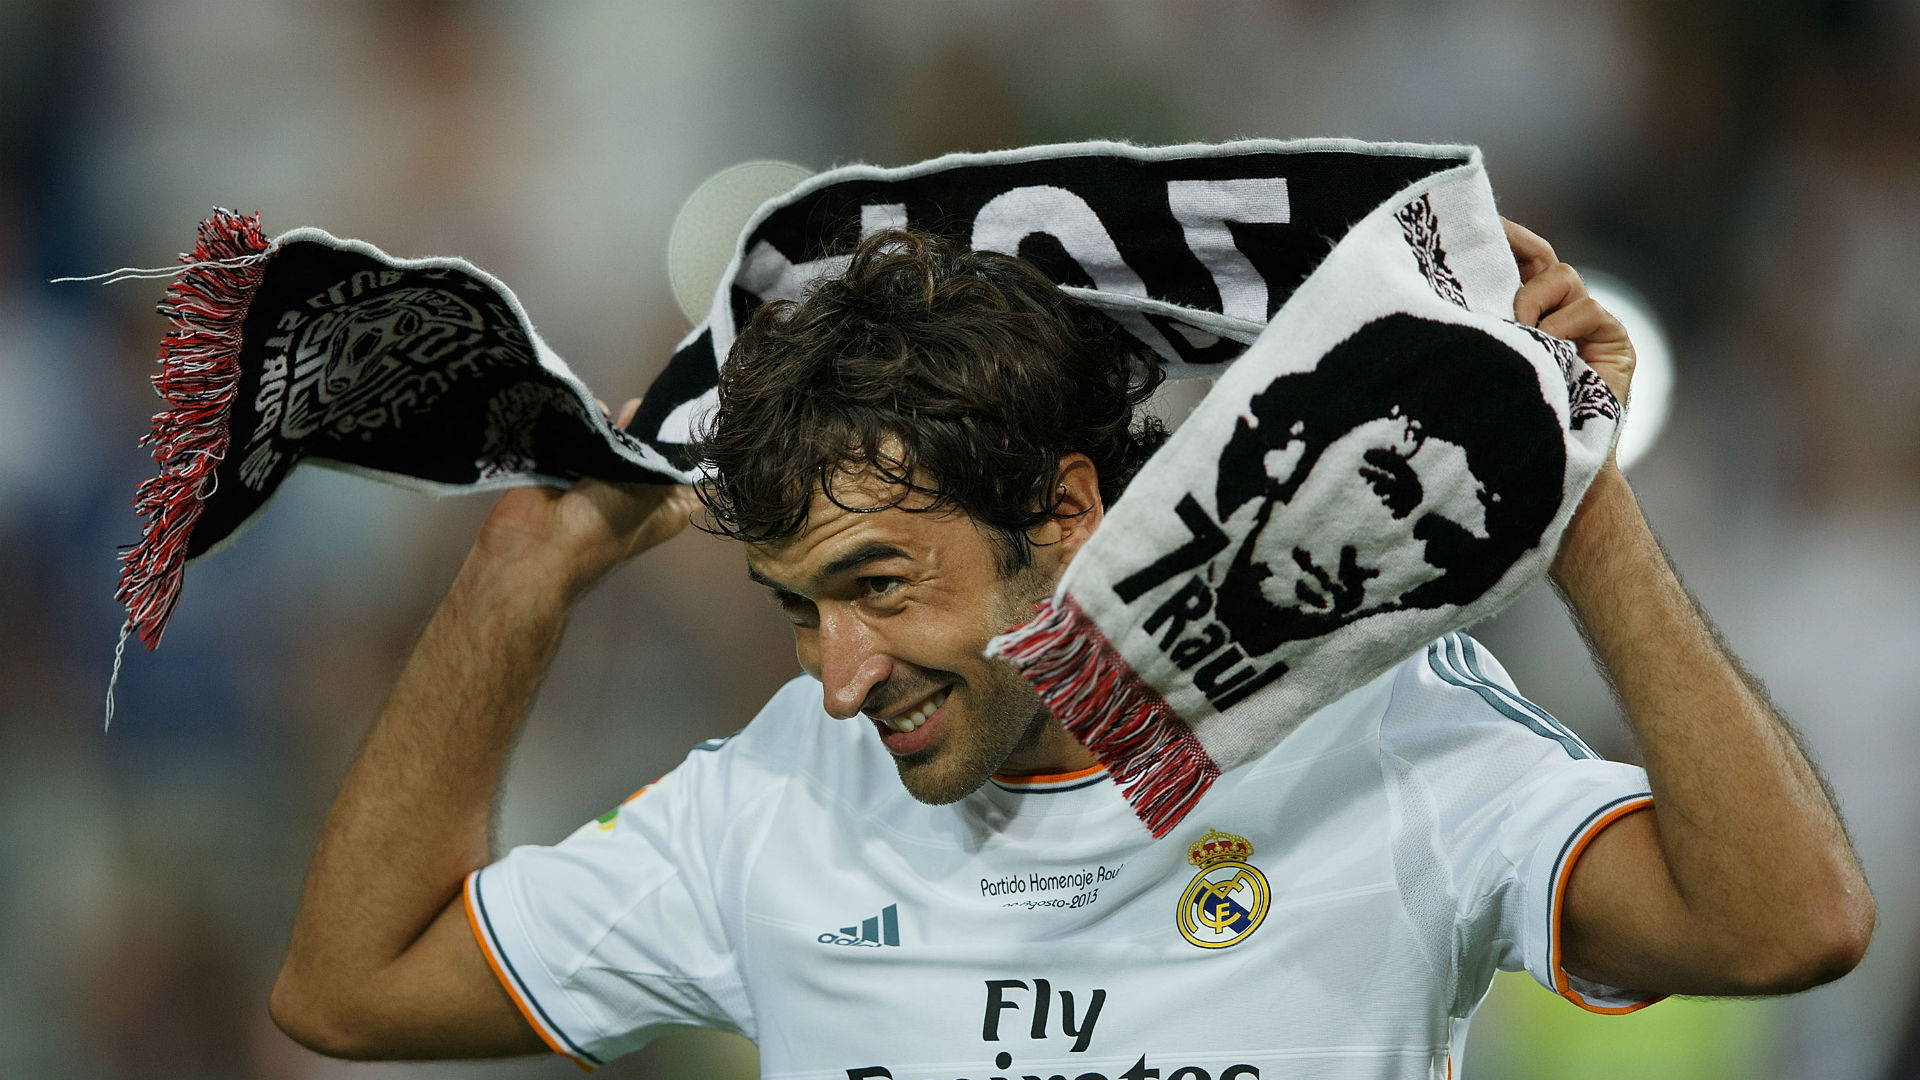 Raul confirmed as the new coach of Castilla